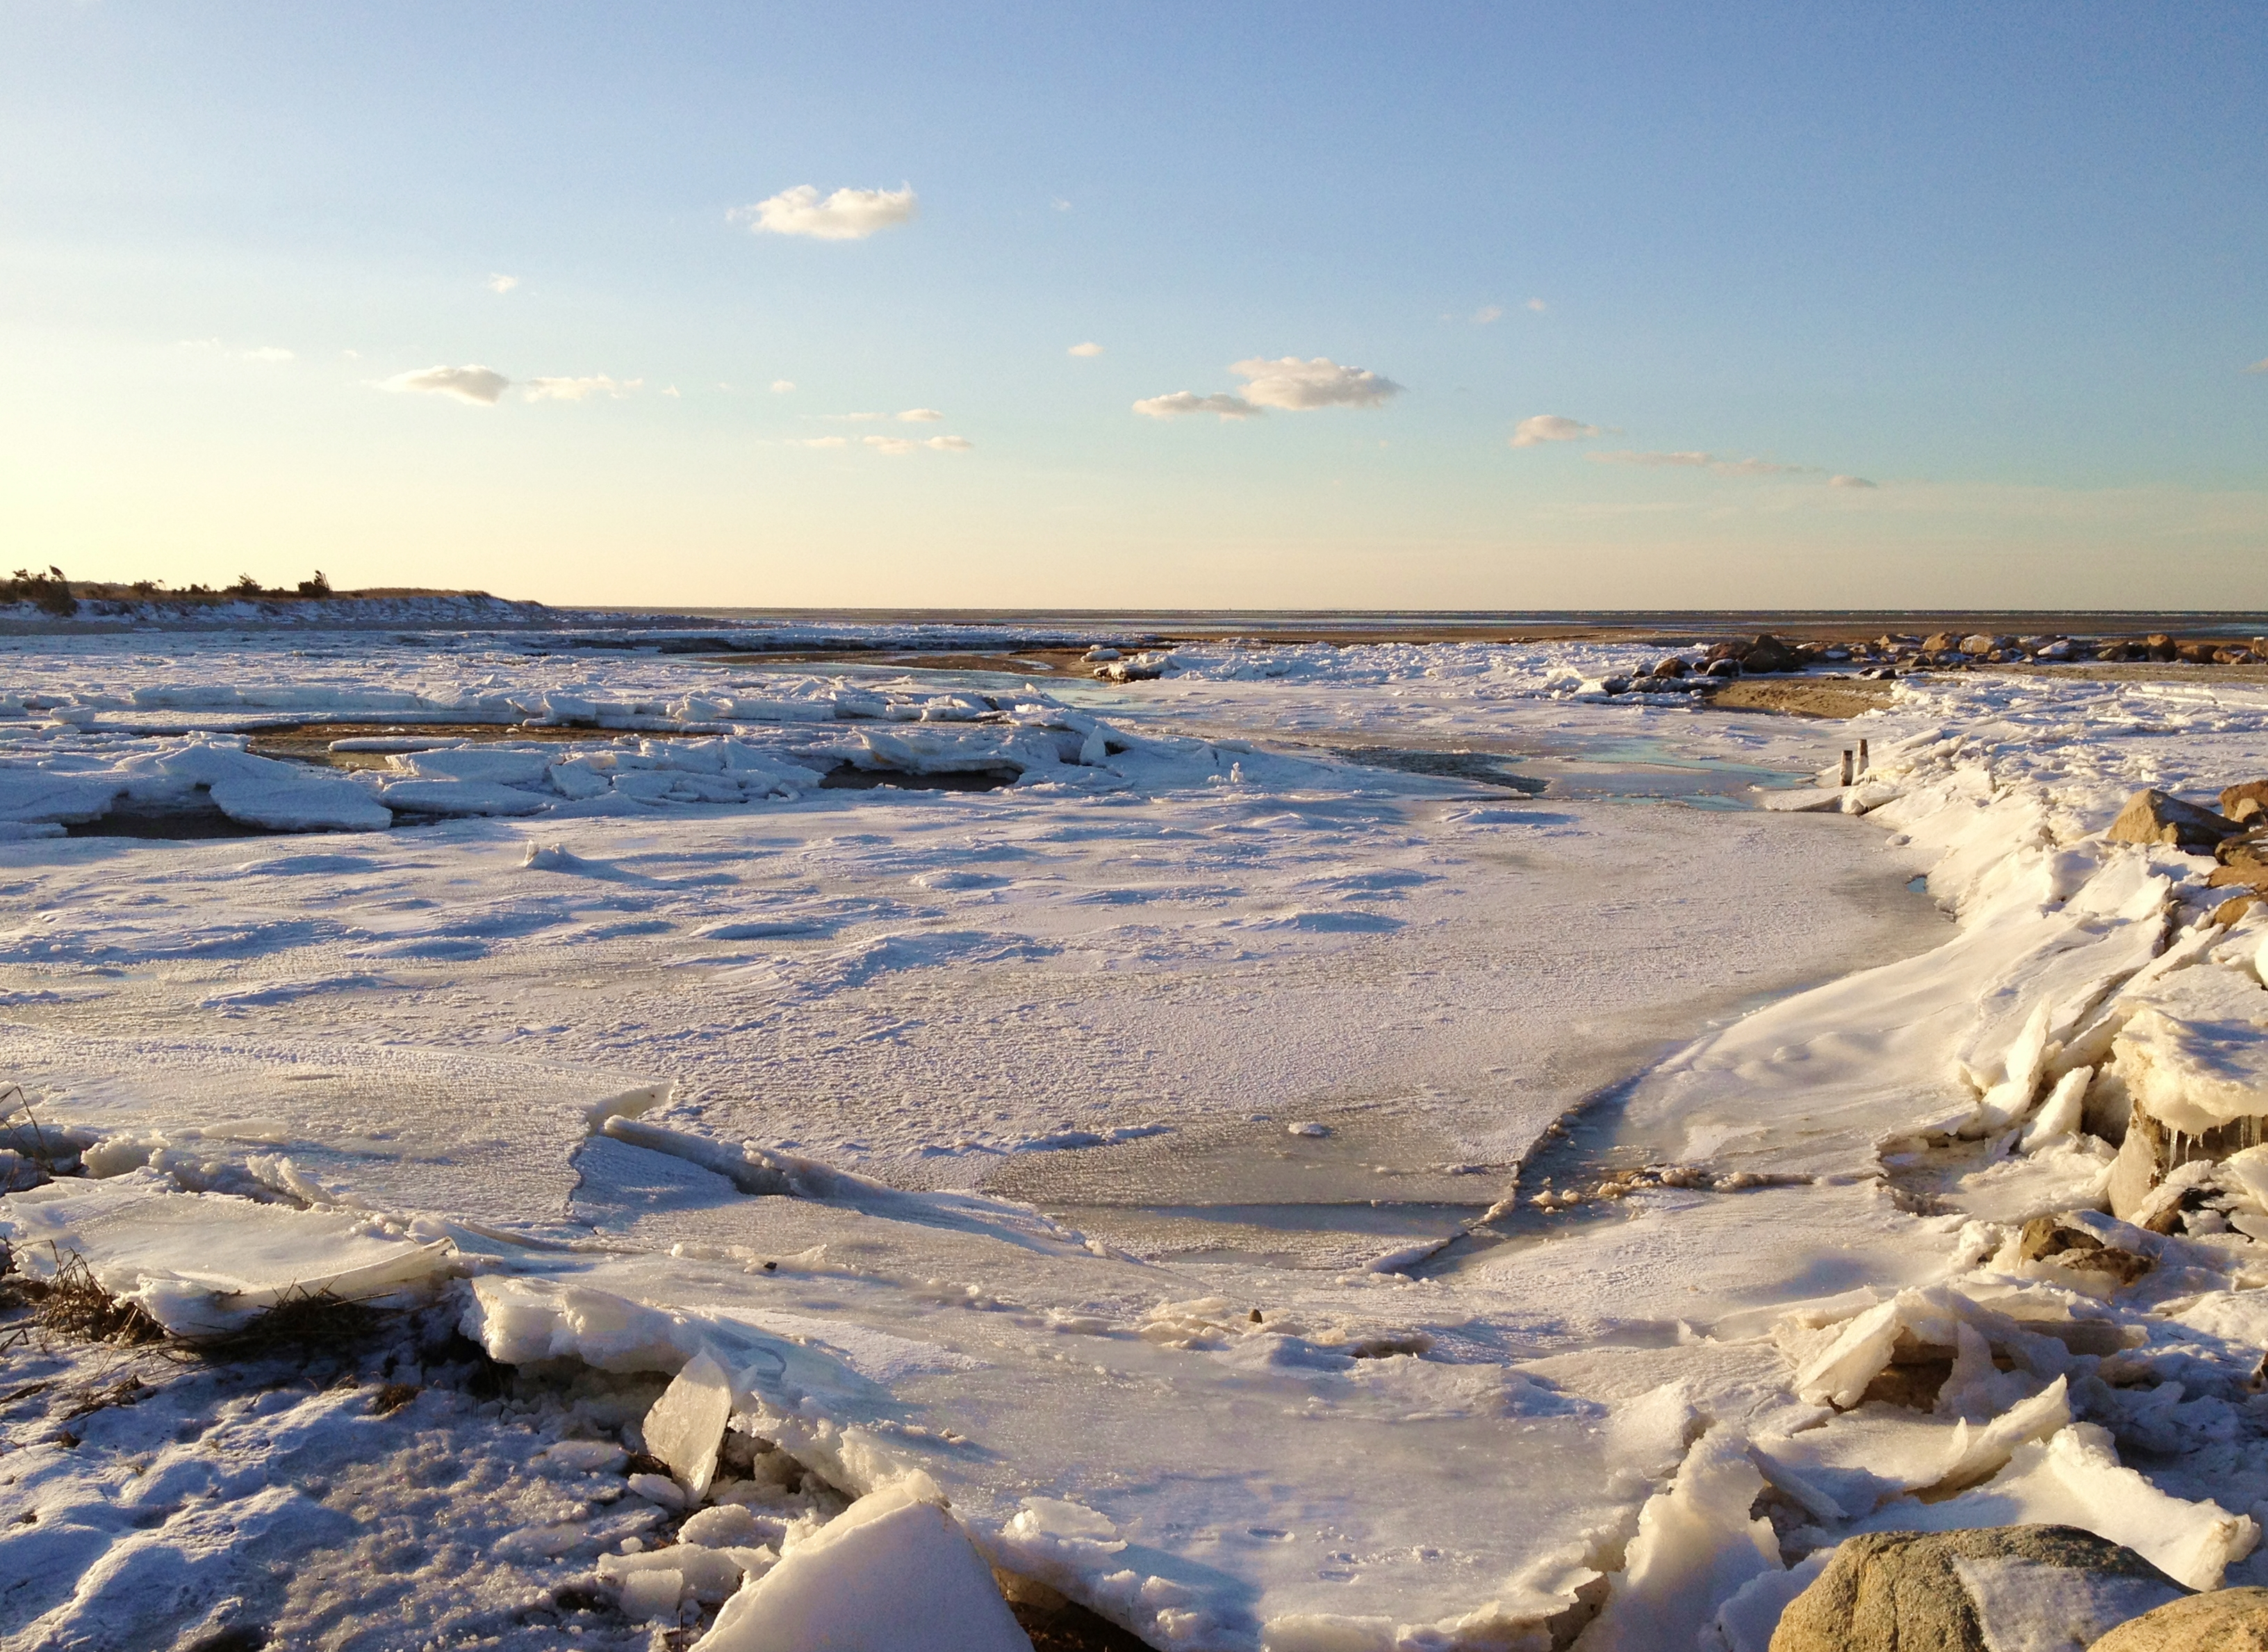 Frozen Cape Cod Bay